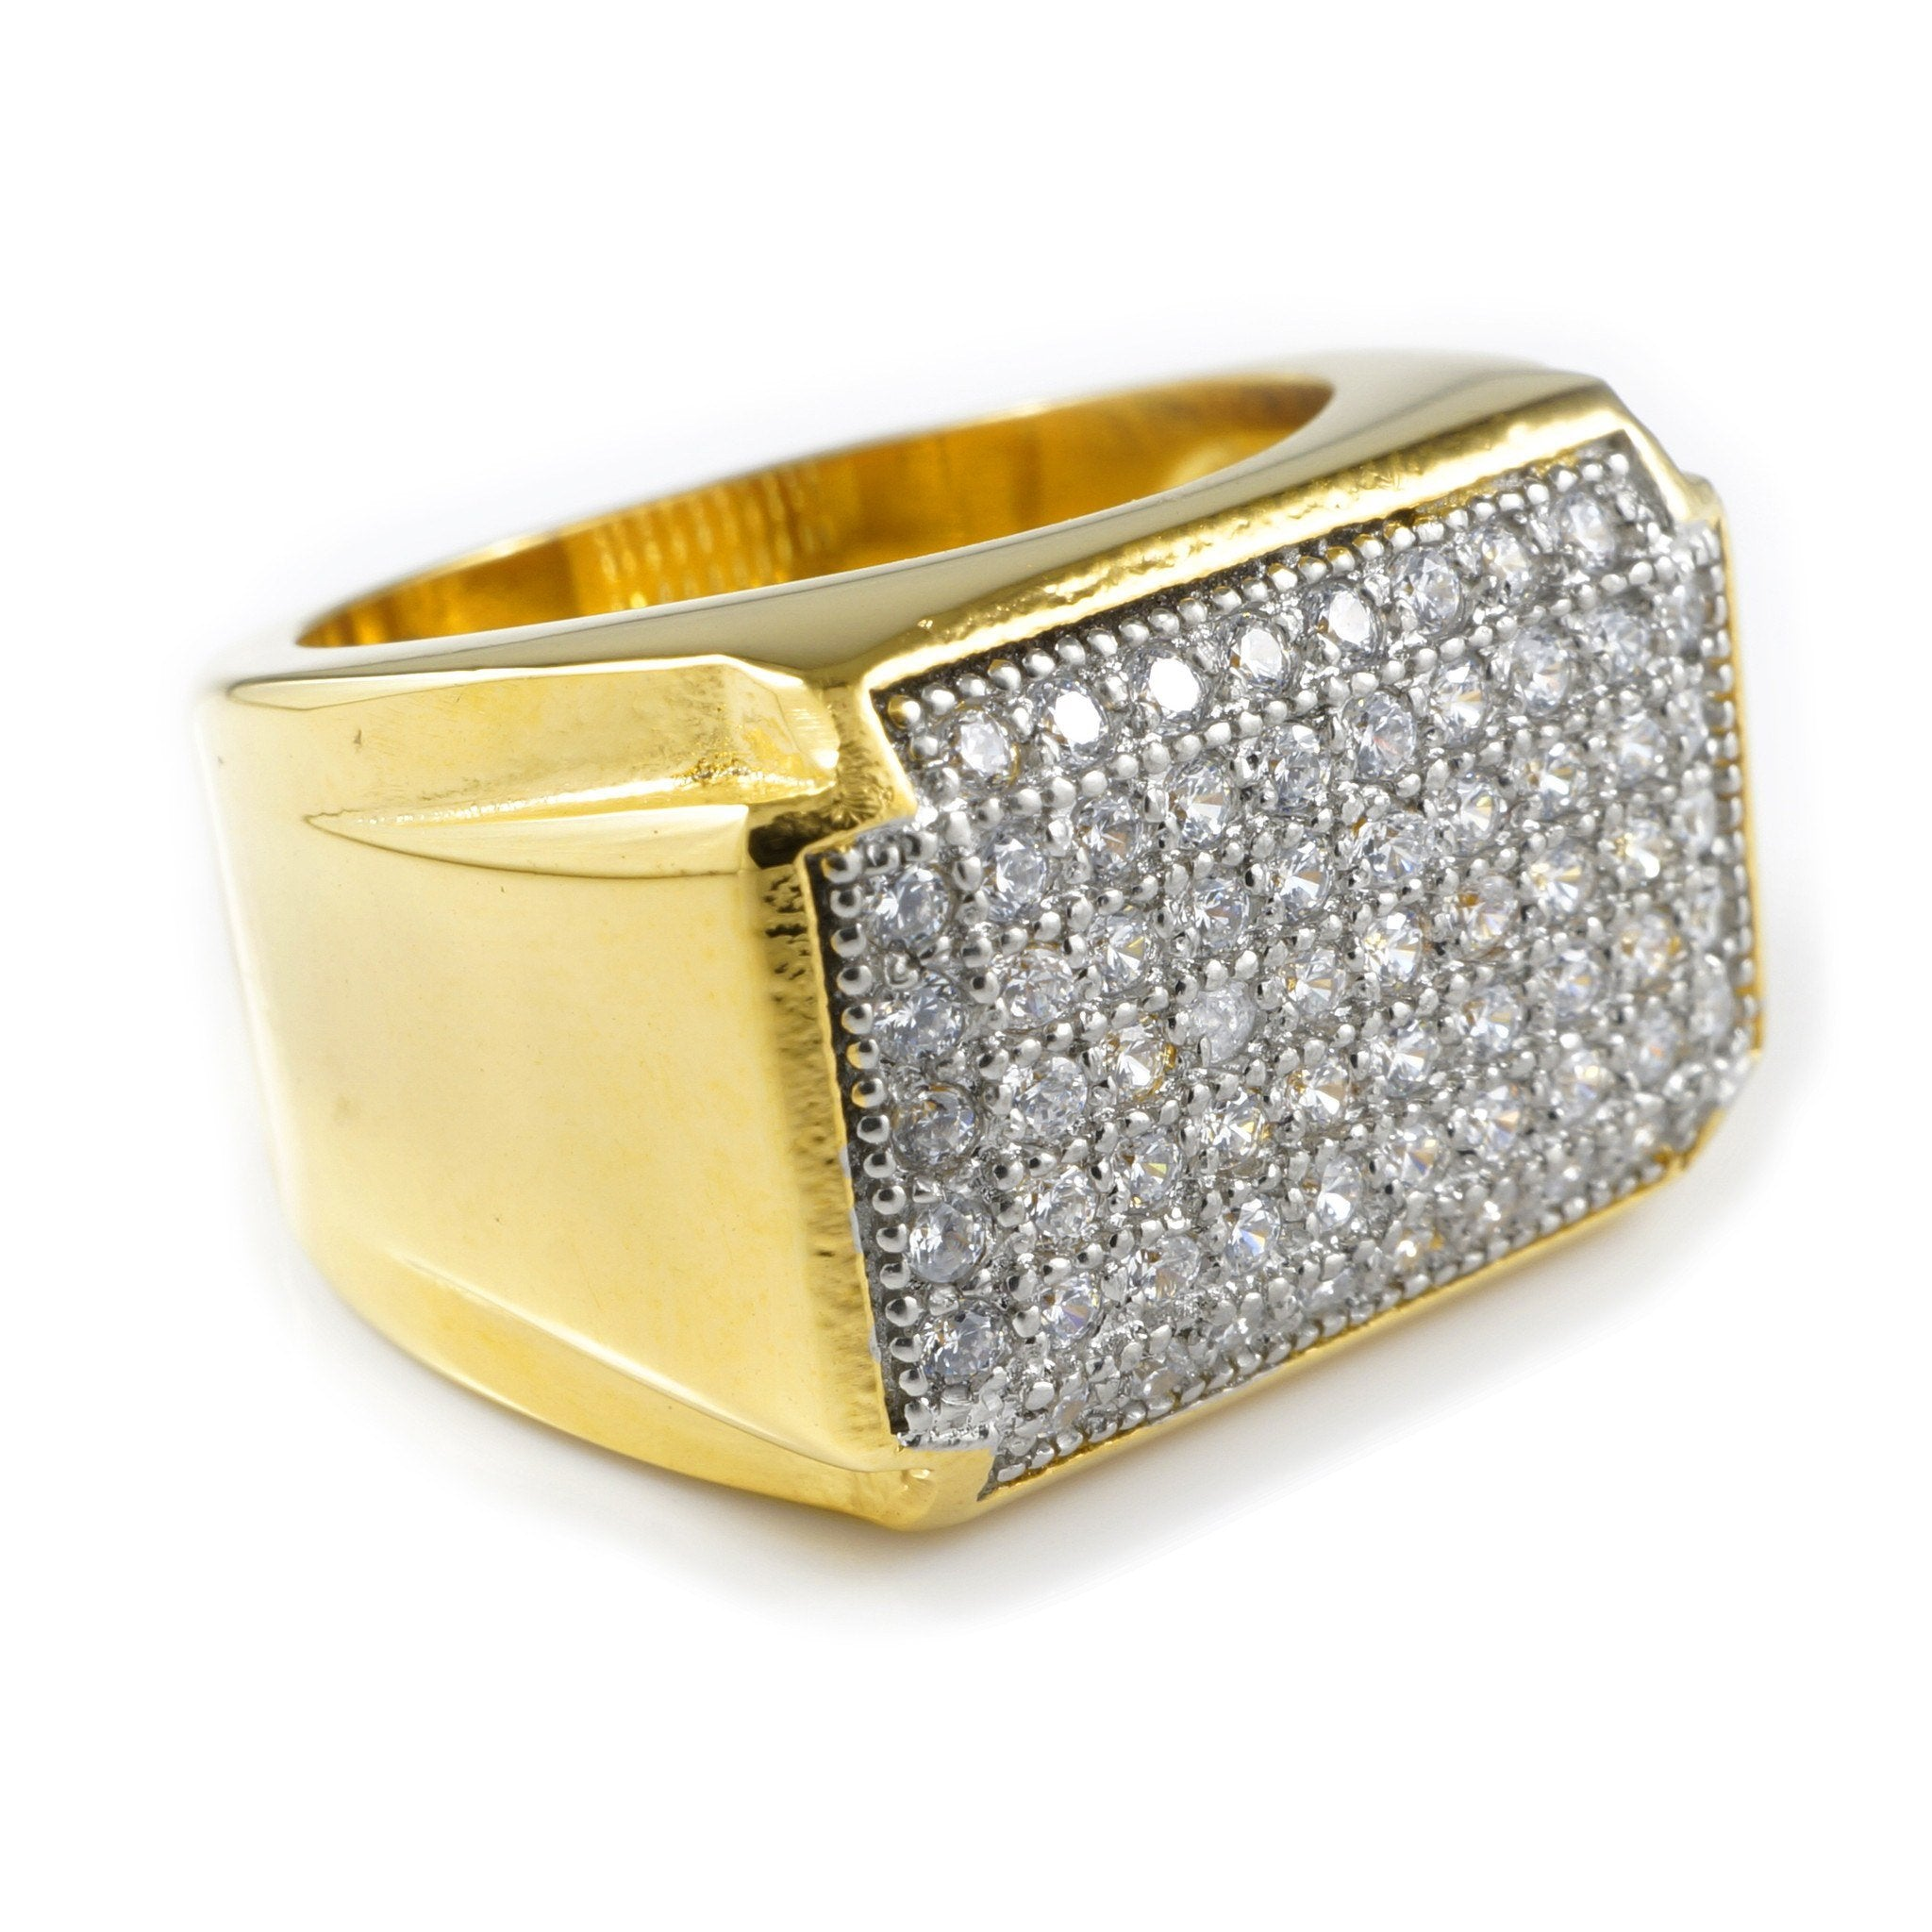 Affordable 18k Gold Iced Out Stainless Steel Rectangle Hip Hop Ring - White Background